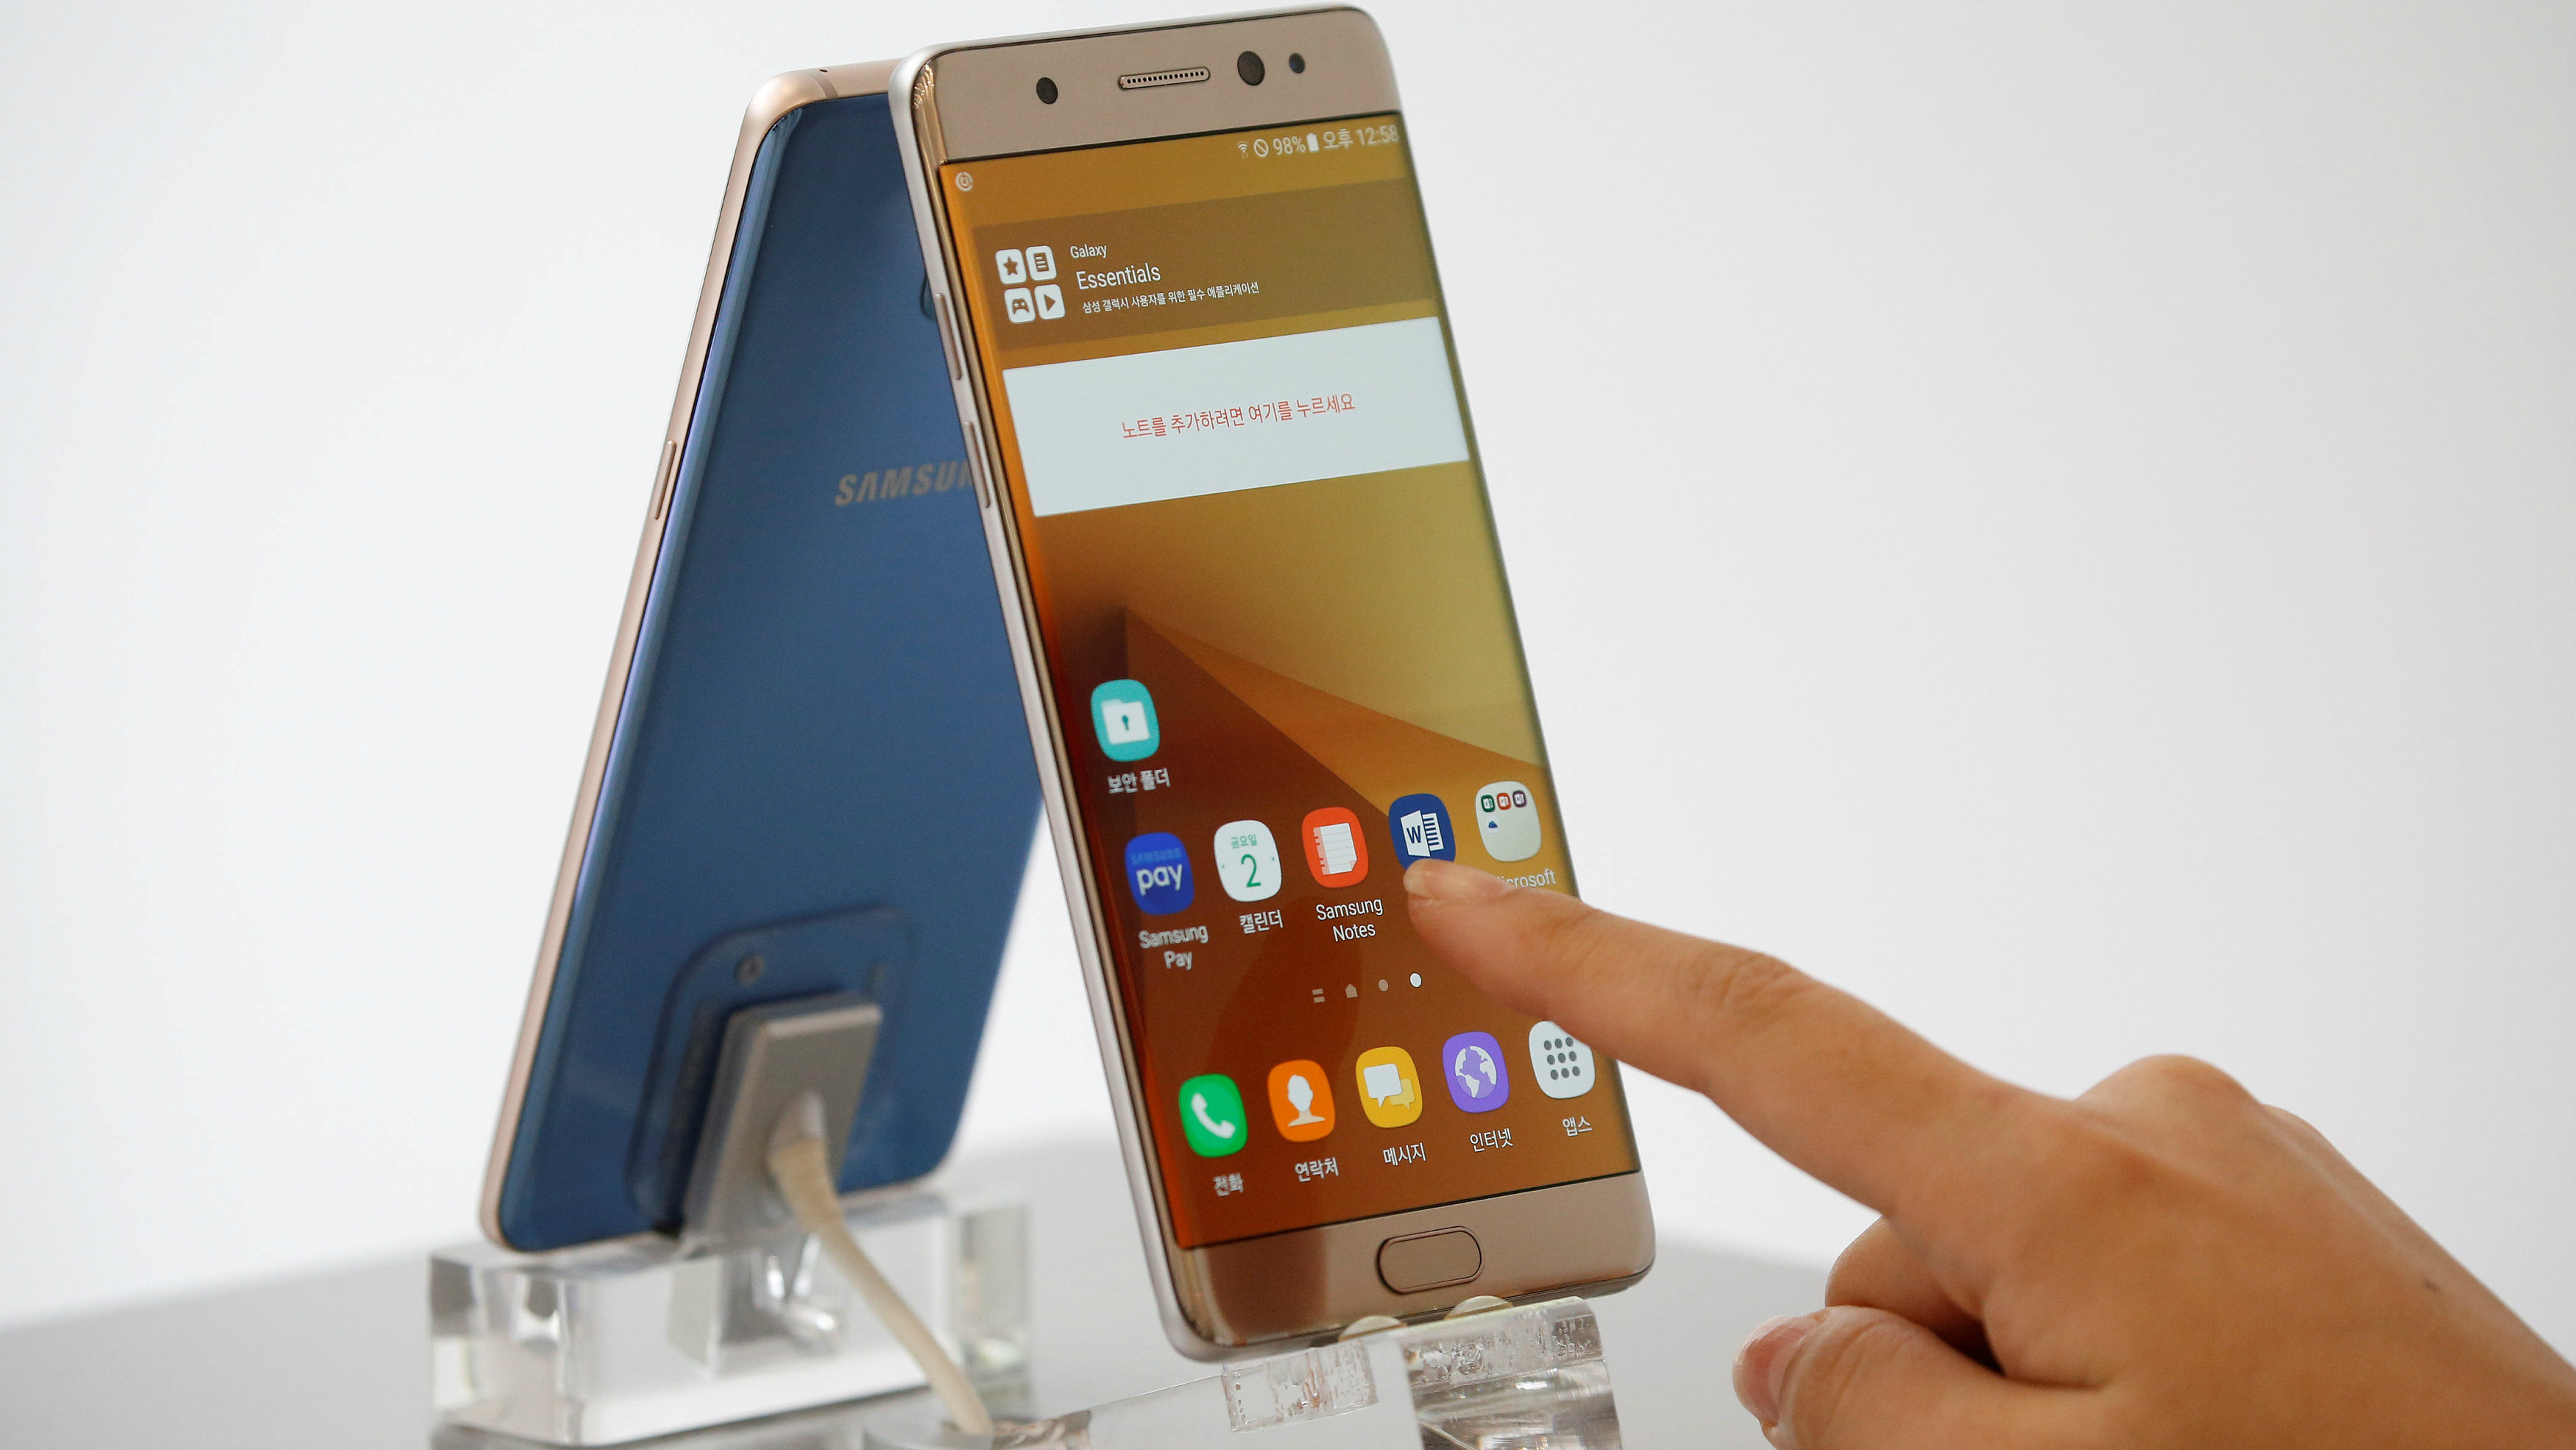 A Samsung Galaxy Note 7 with a finger swiping its screen